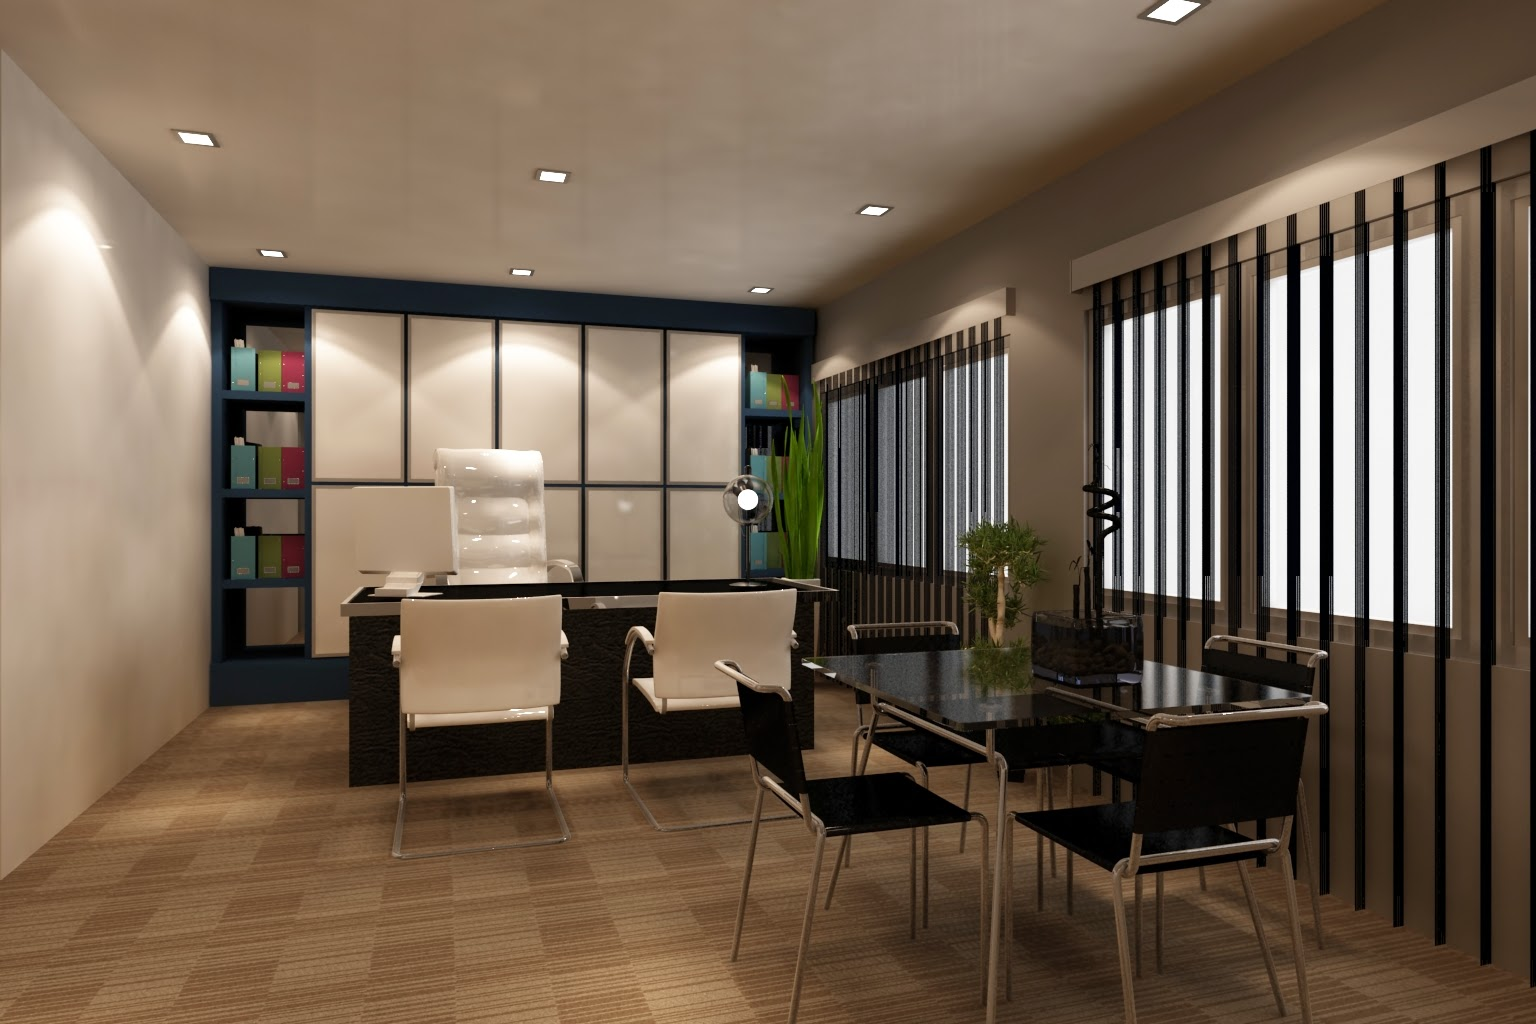 Attirant Try It Out For Your Next Plans Of Office Layouts. Give More Of The Realism  To Your Project And Bring Home The Best Of Designs With 3D Model Software.